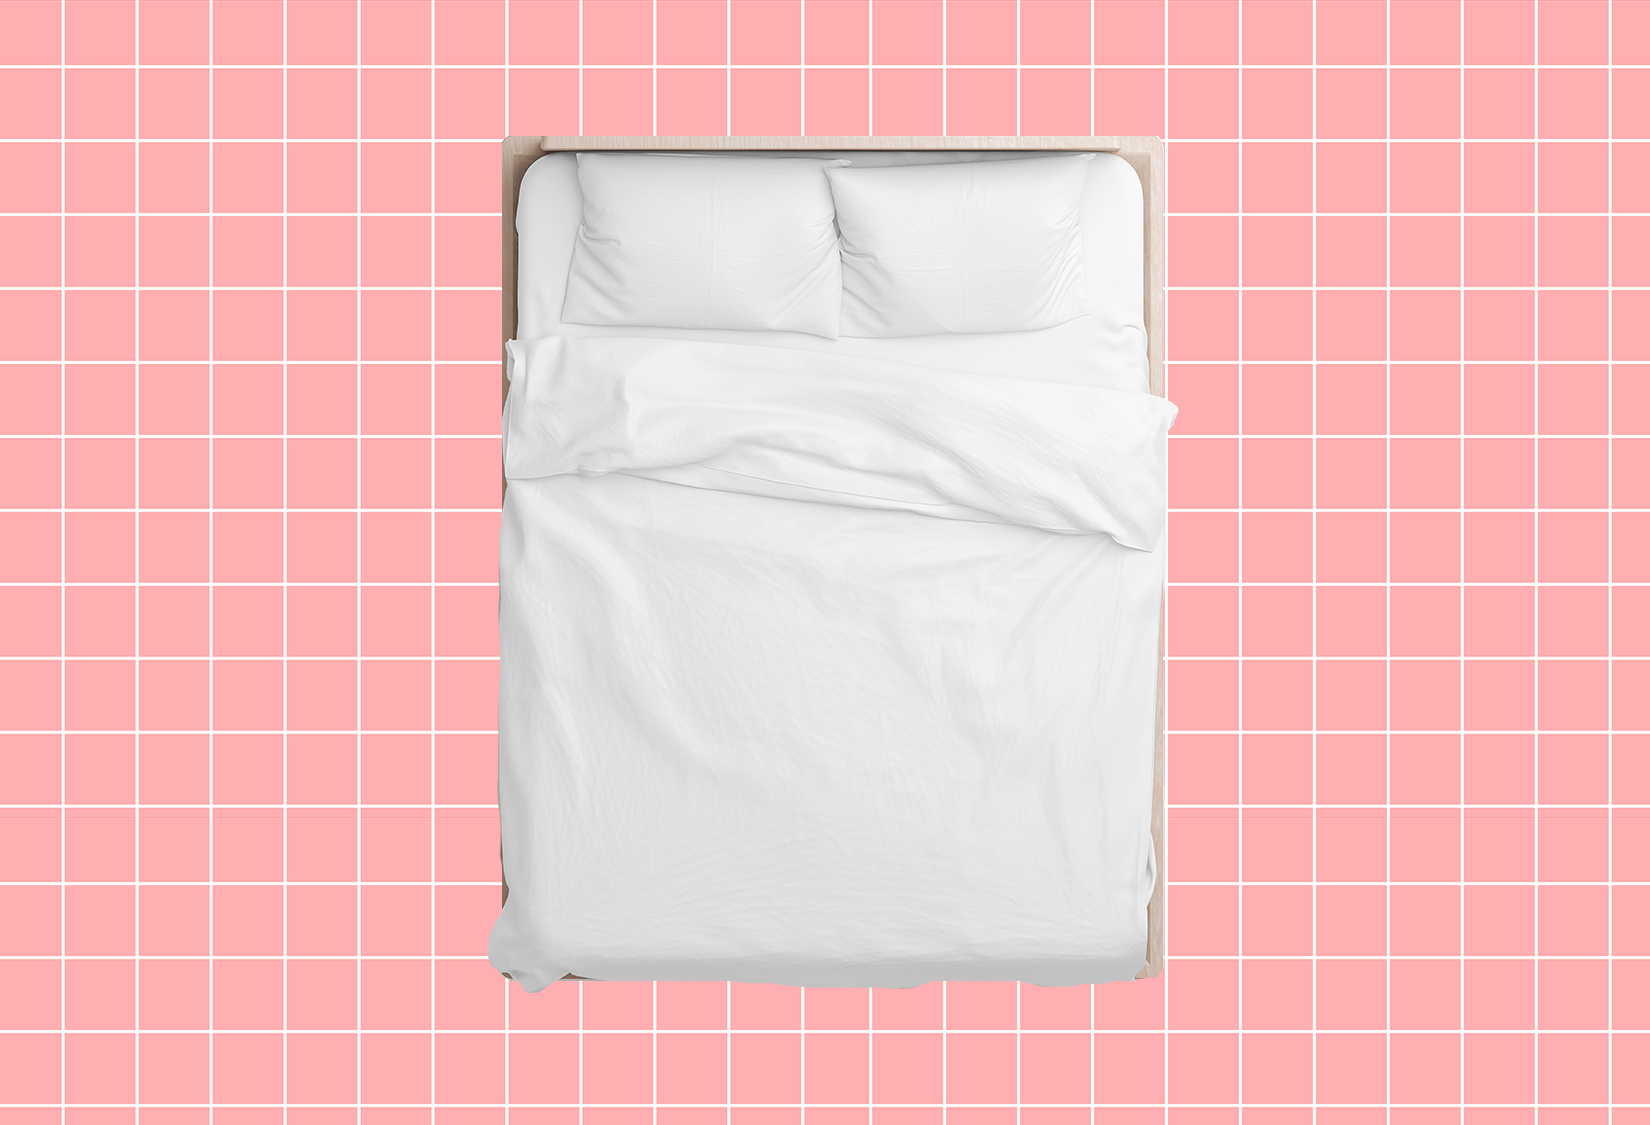 New Bedding Products, Bed with White Sheets